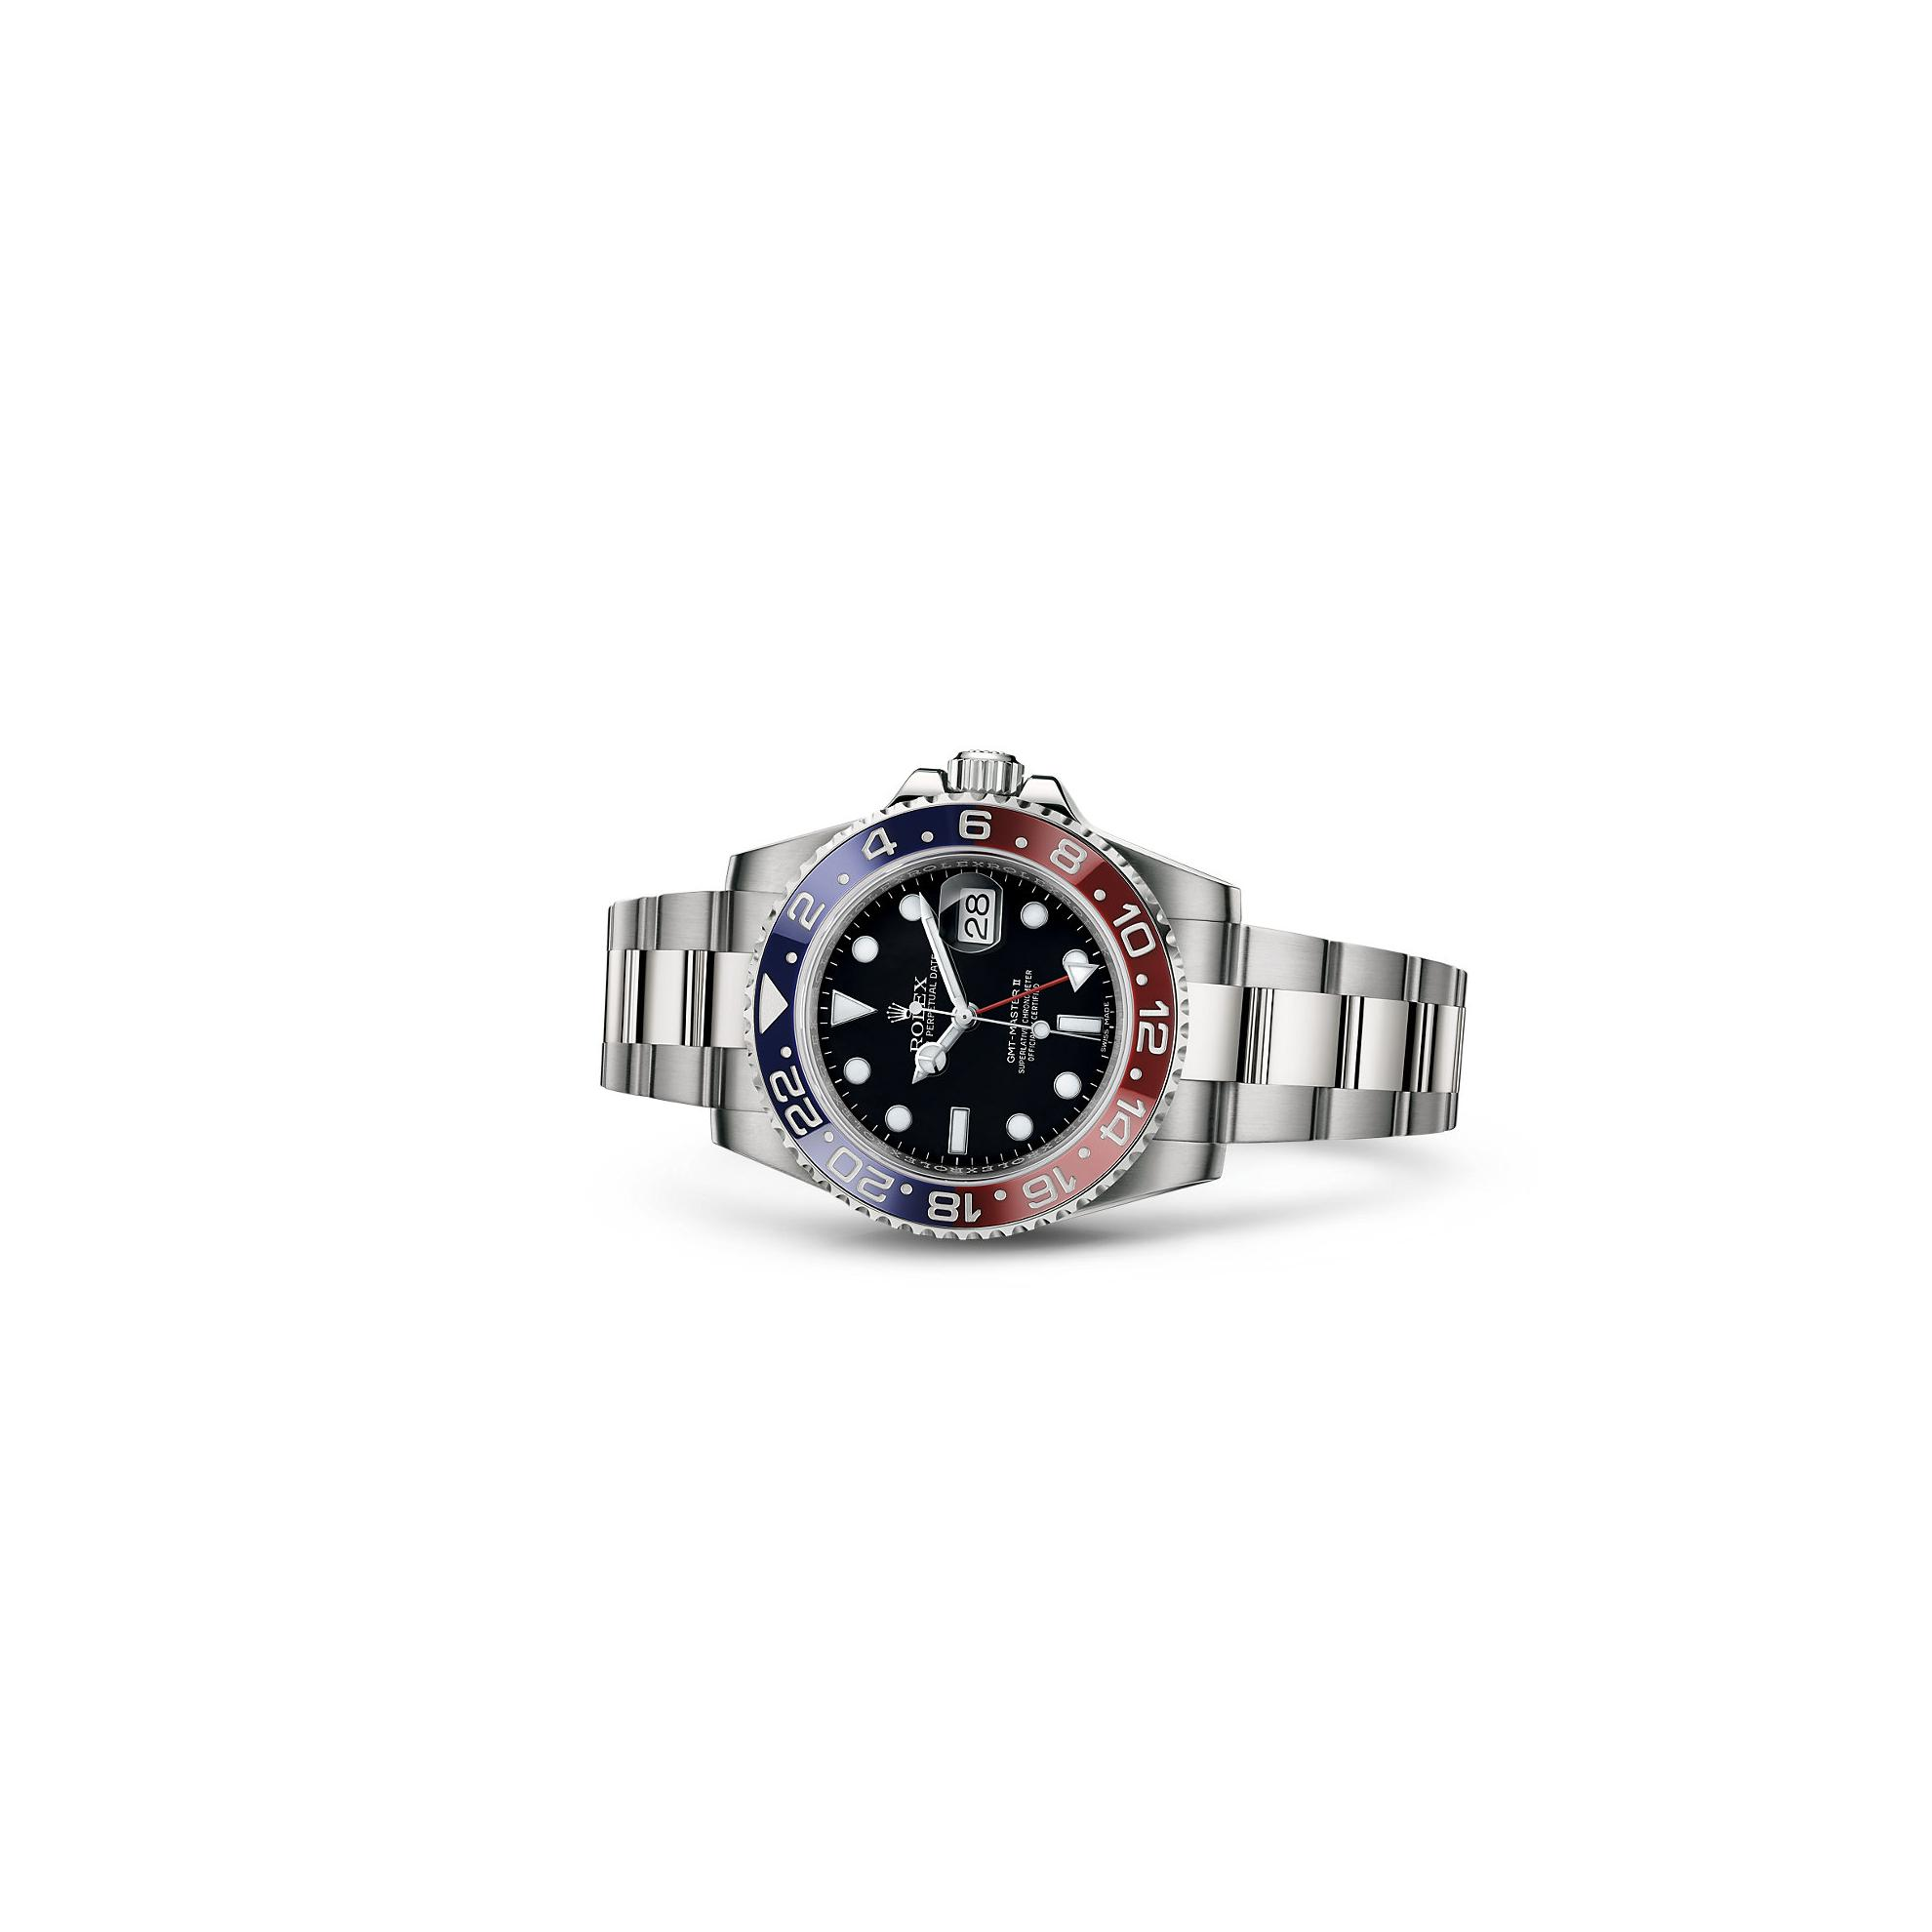 Rolex B00VAUU3GU B00VAUU3GU Rolex GMT-Master II White Gold Pepsi Red & Blue Ceramic Unworn 116719 Watch 2016